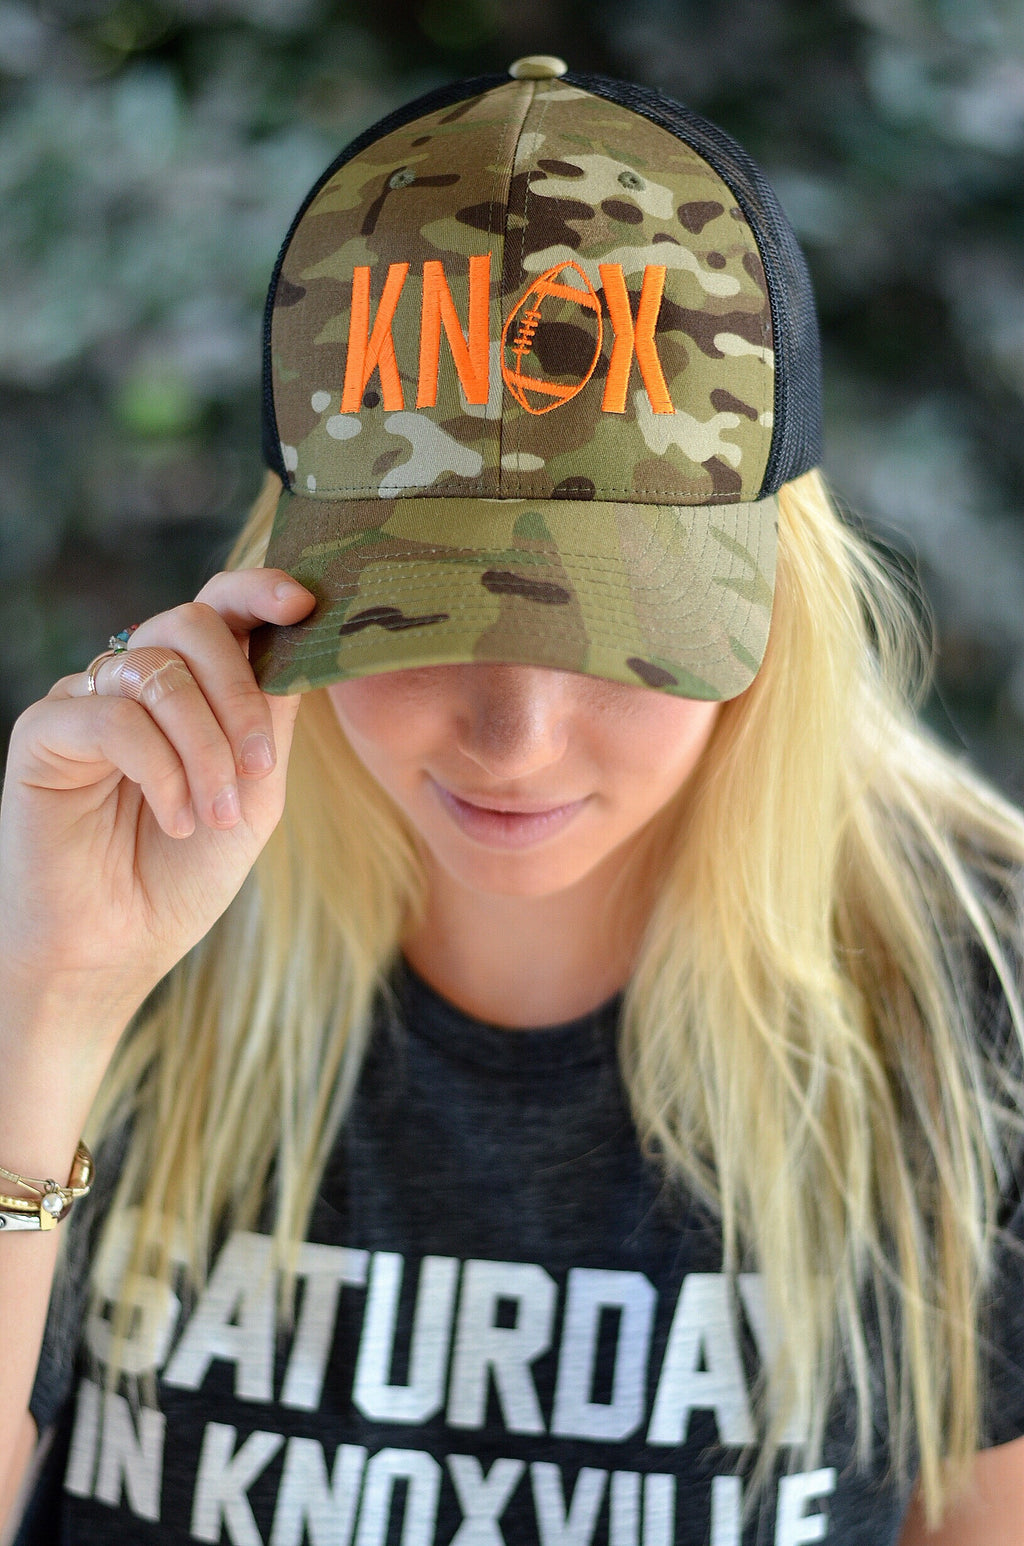 KNOX Football Trucker Hat, Camo